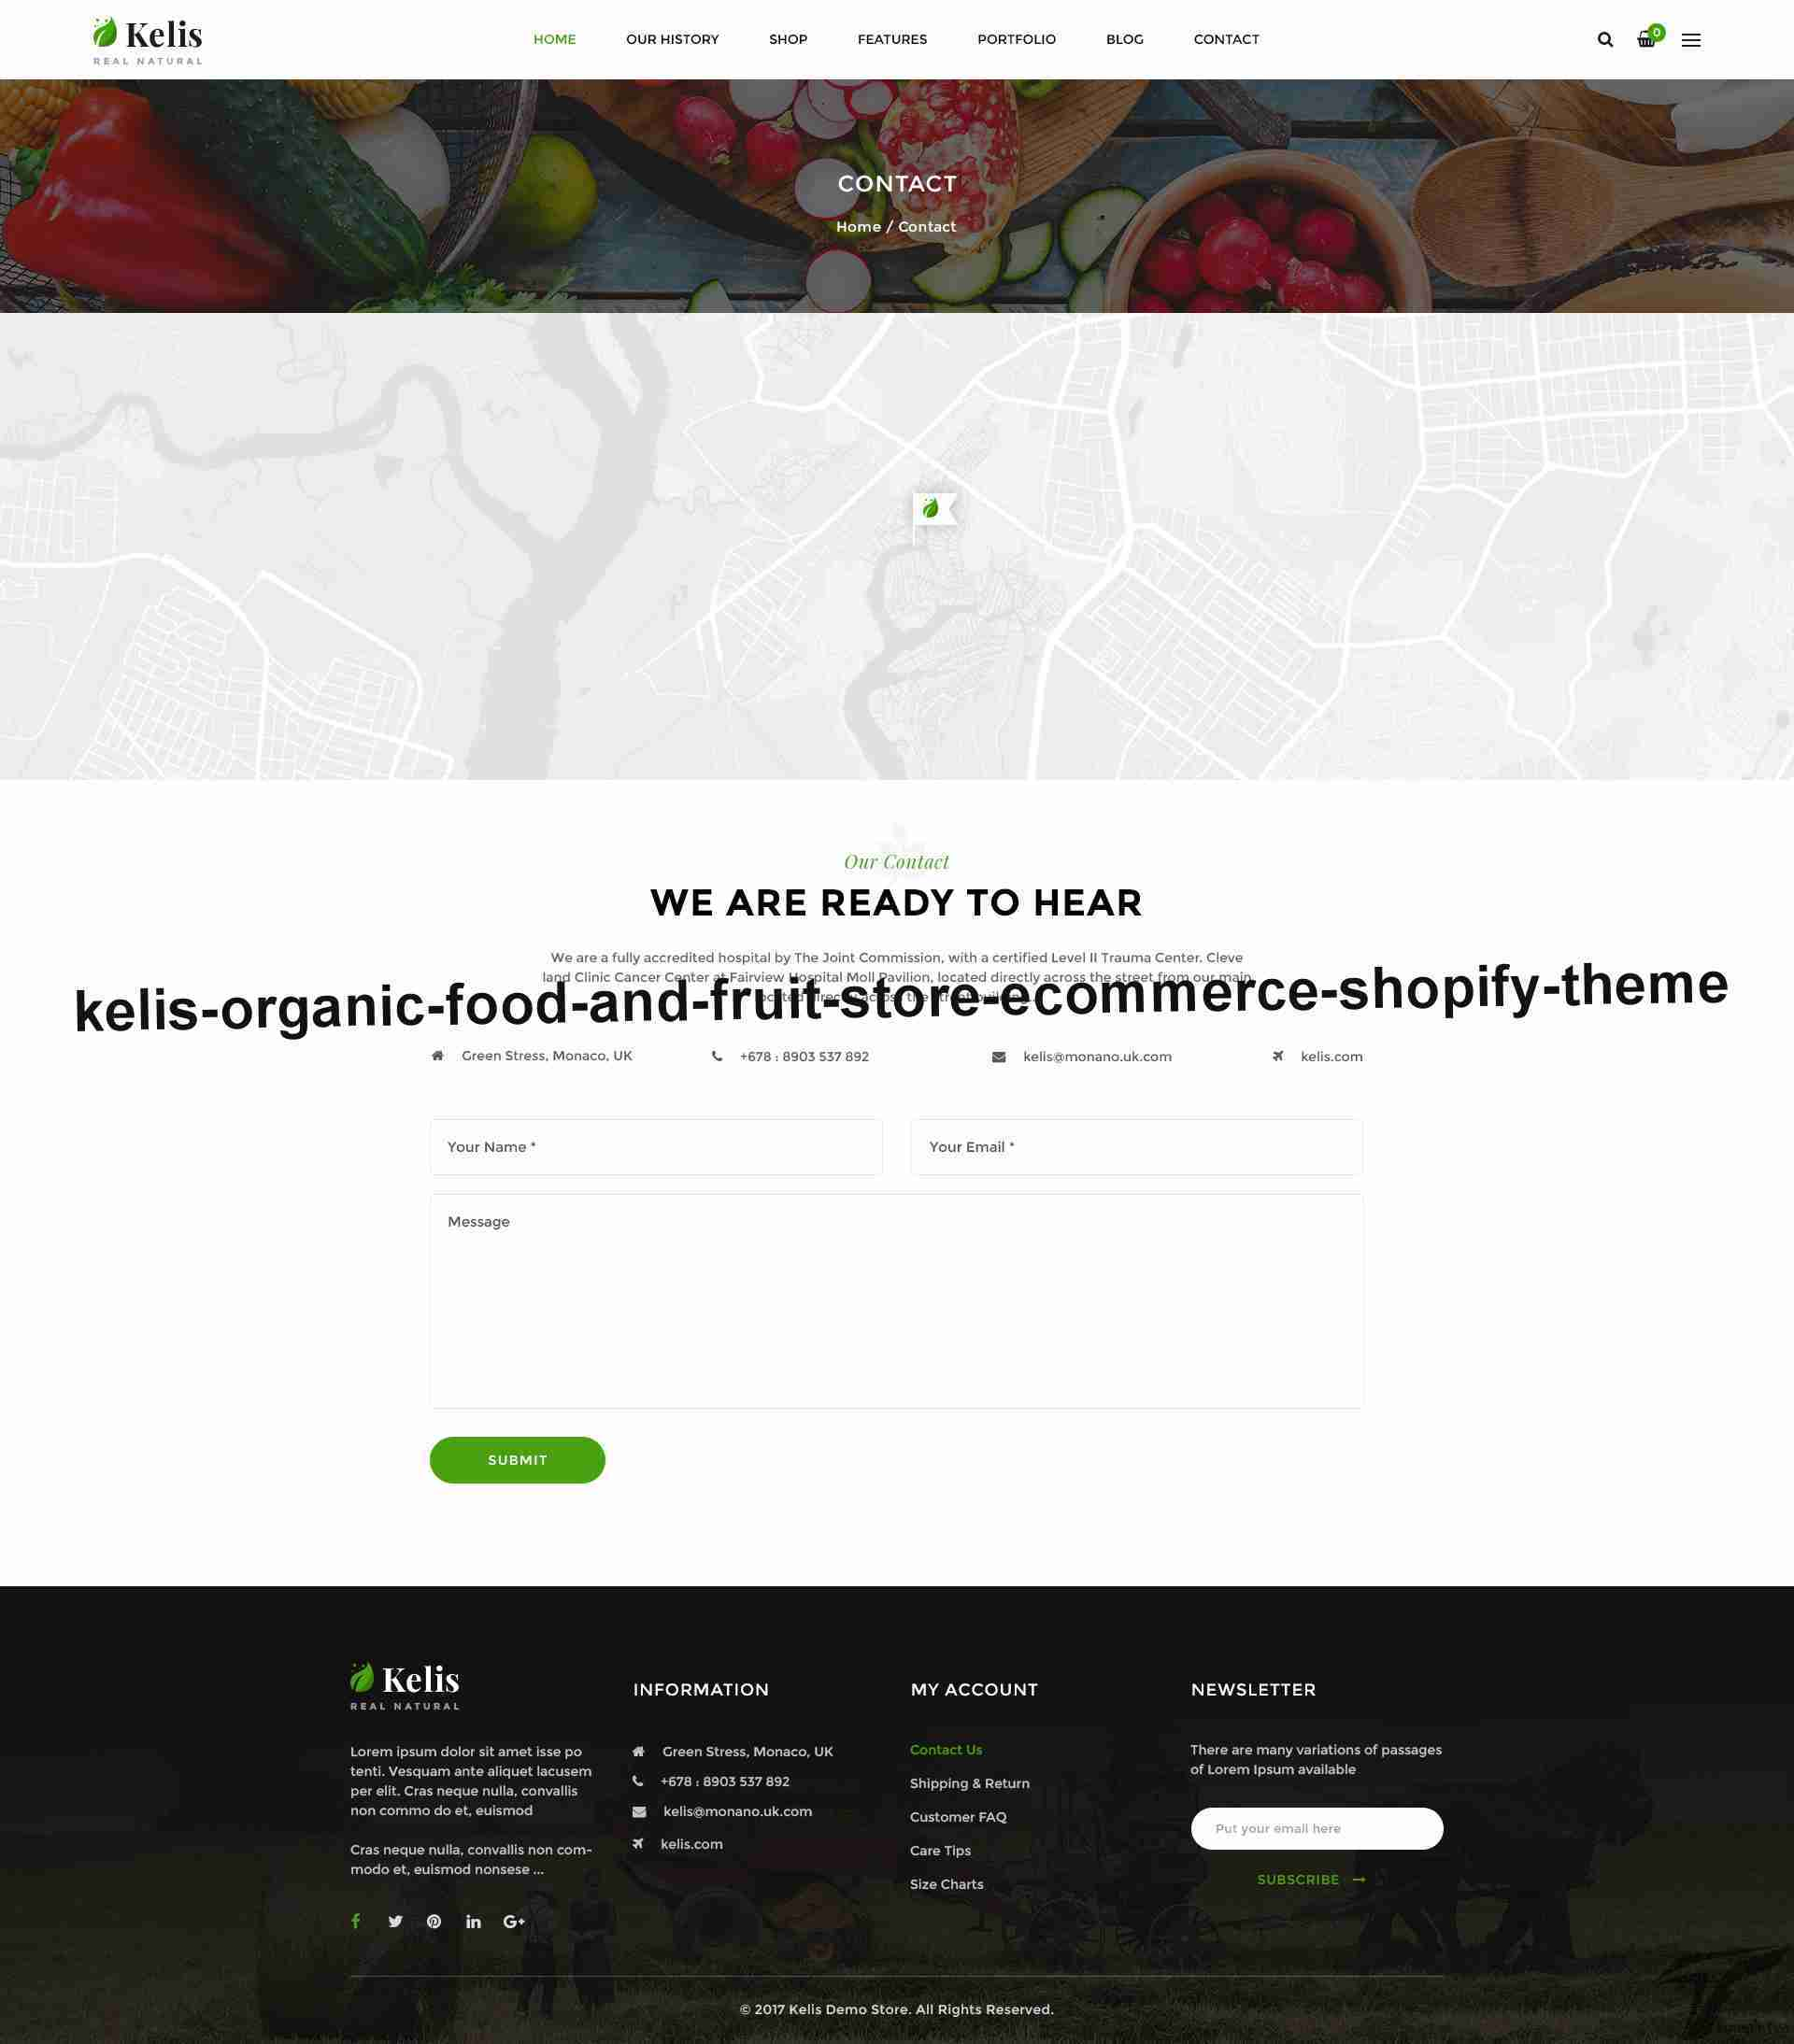 https://images.besthemes.com/images/h1_kelis-organic-food-and-fruit-store-ecommerce-shopify-theme16-_-234864139/Theme-s20s-Preview/15_Contact.jpg